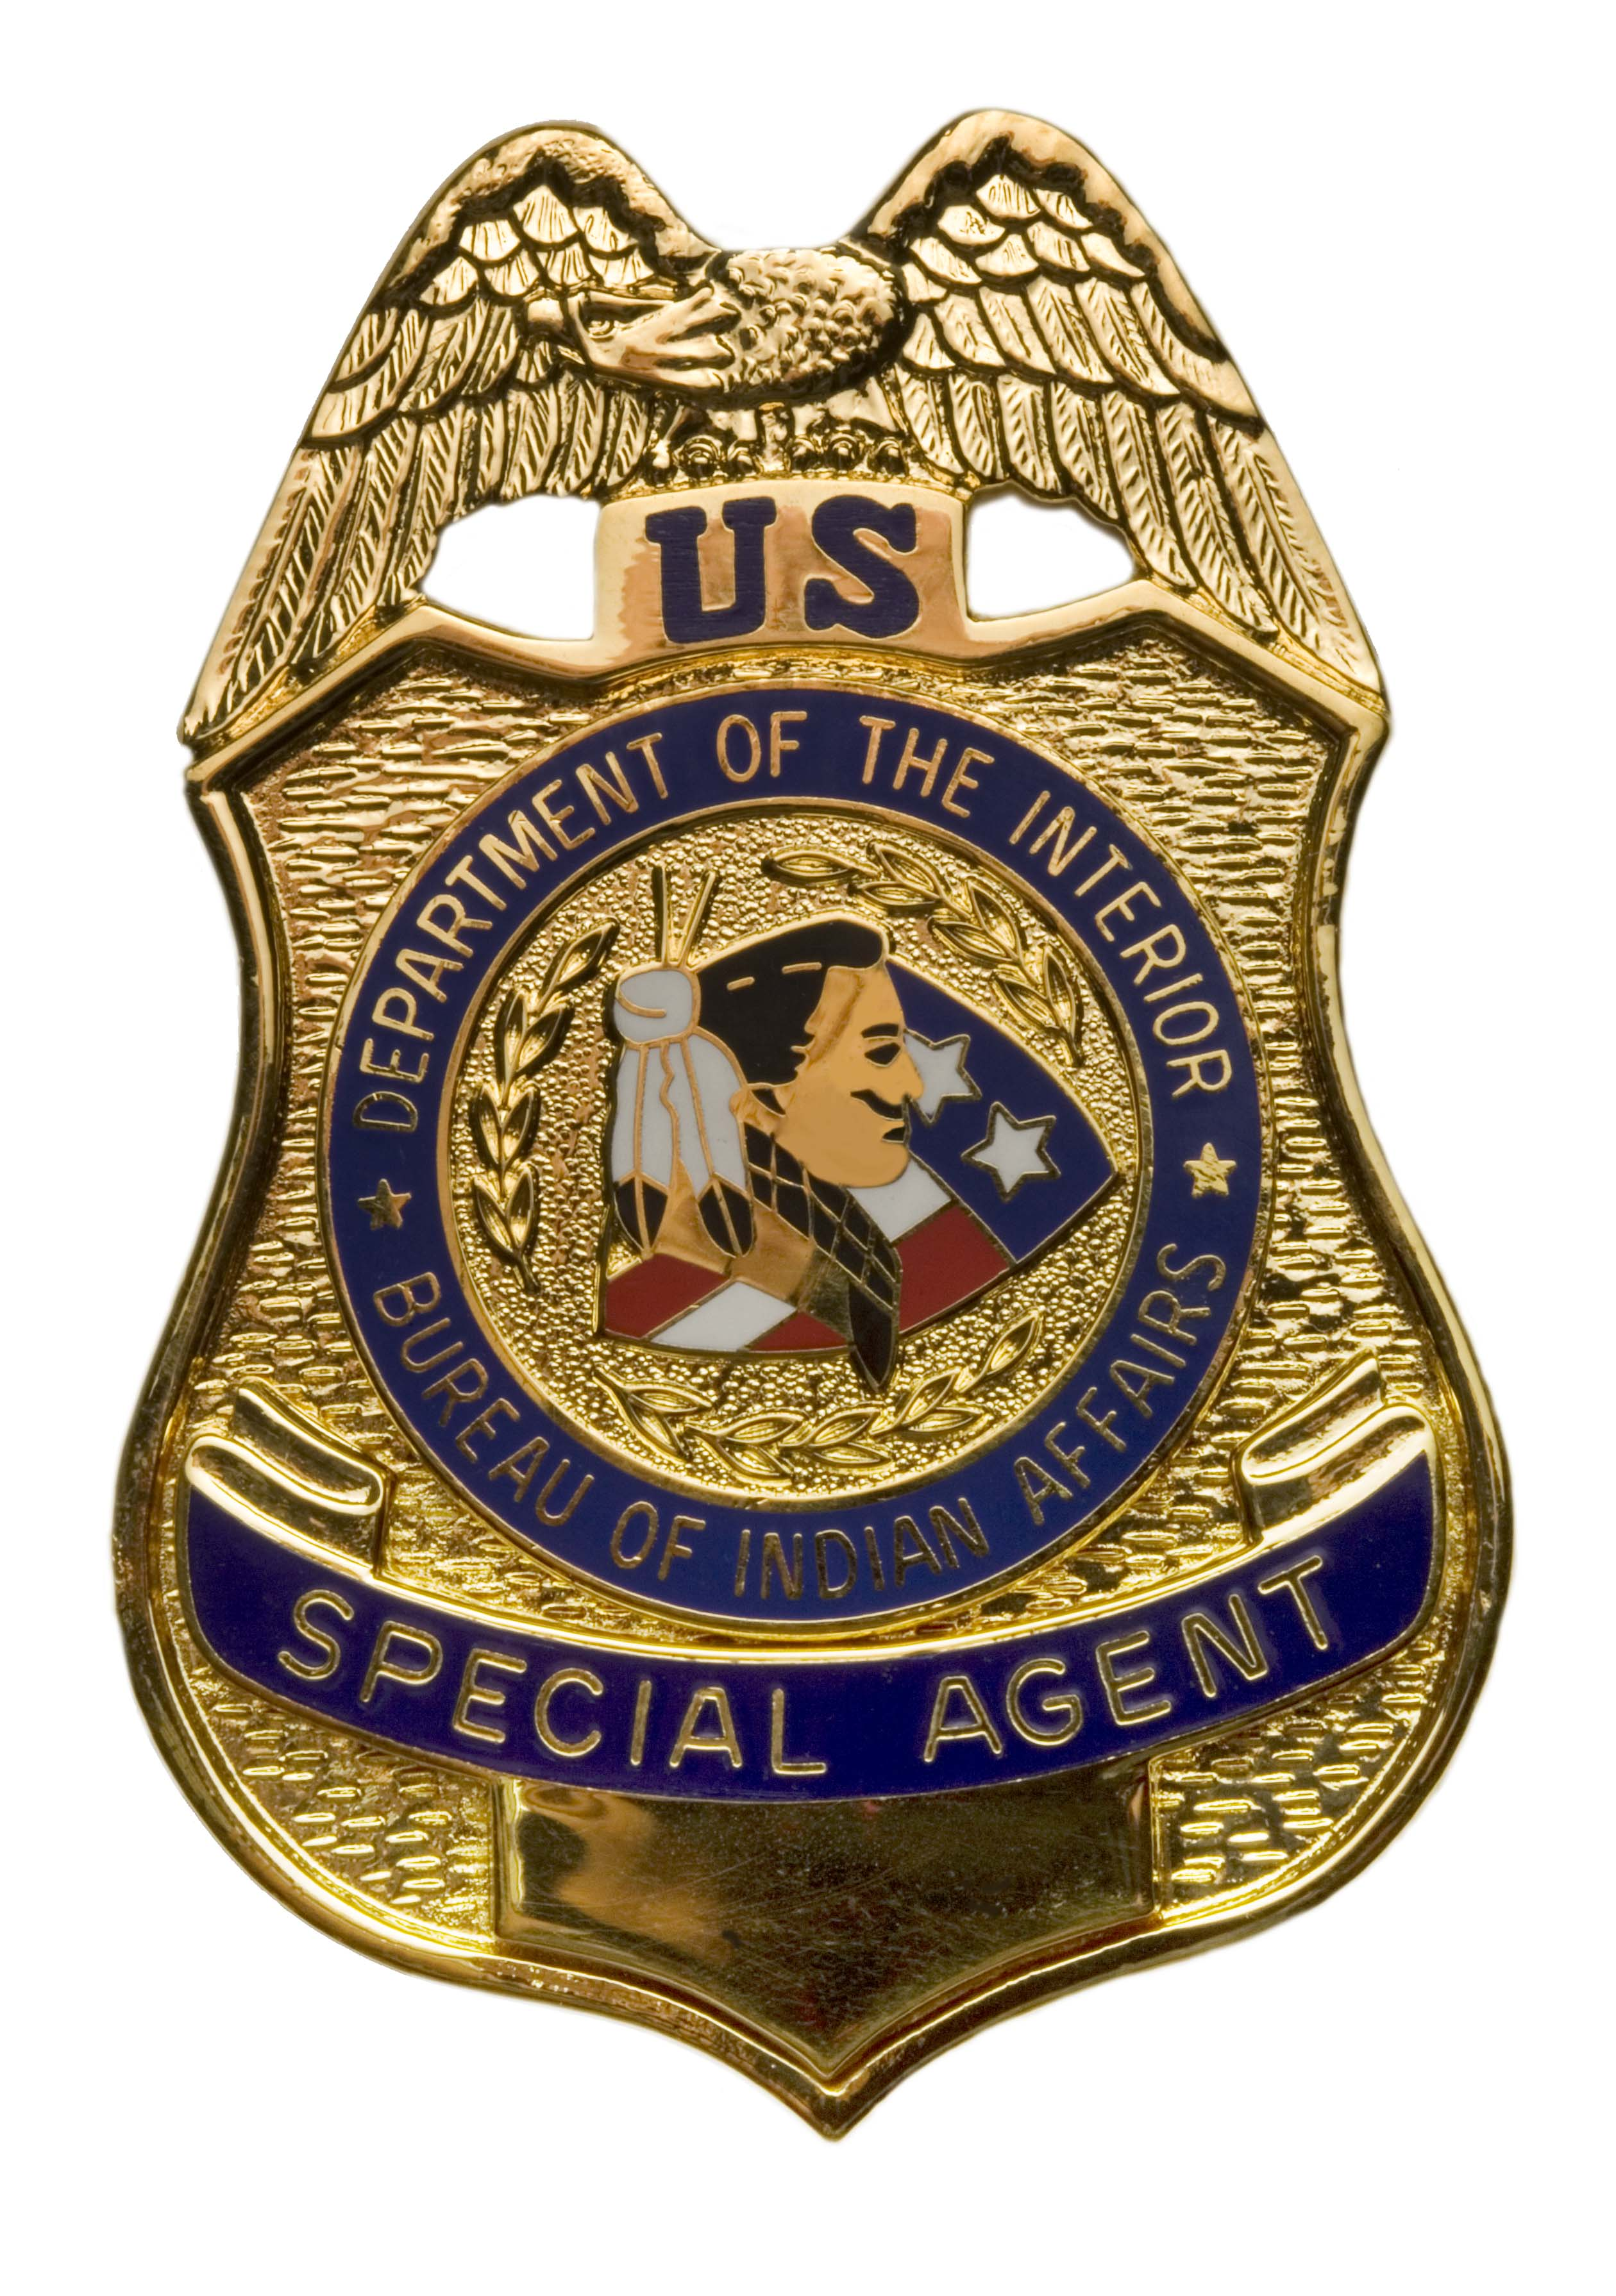 File:BIA Special Agent Badge.jpg - Wikimedia Commons